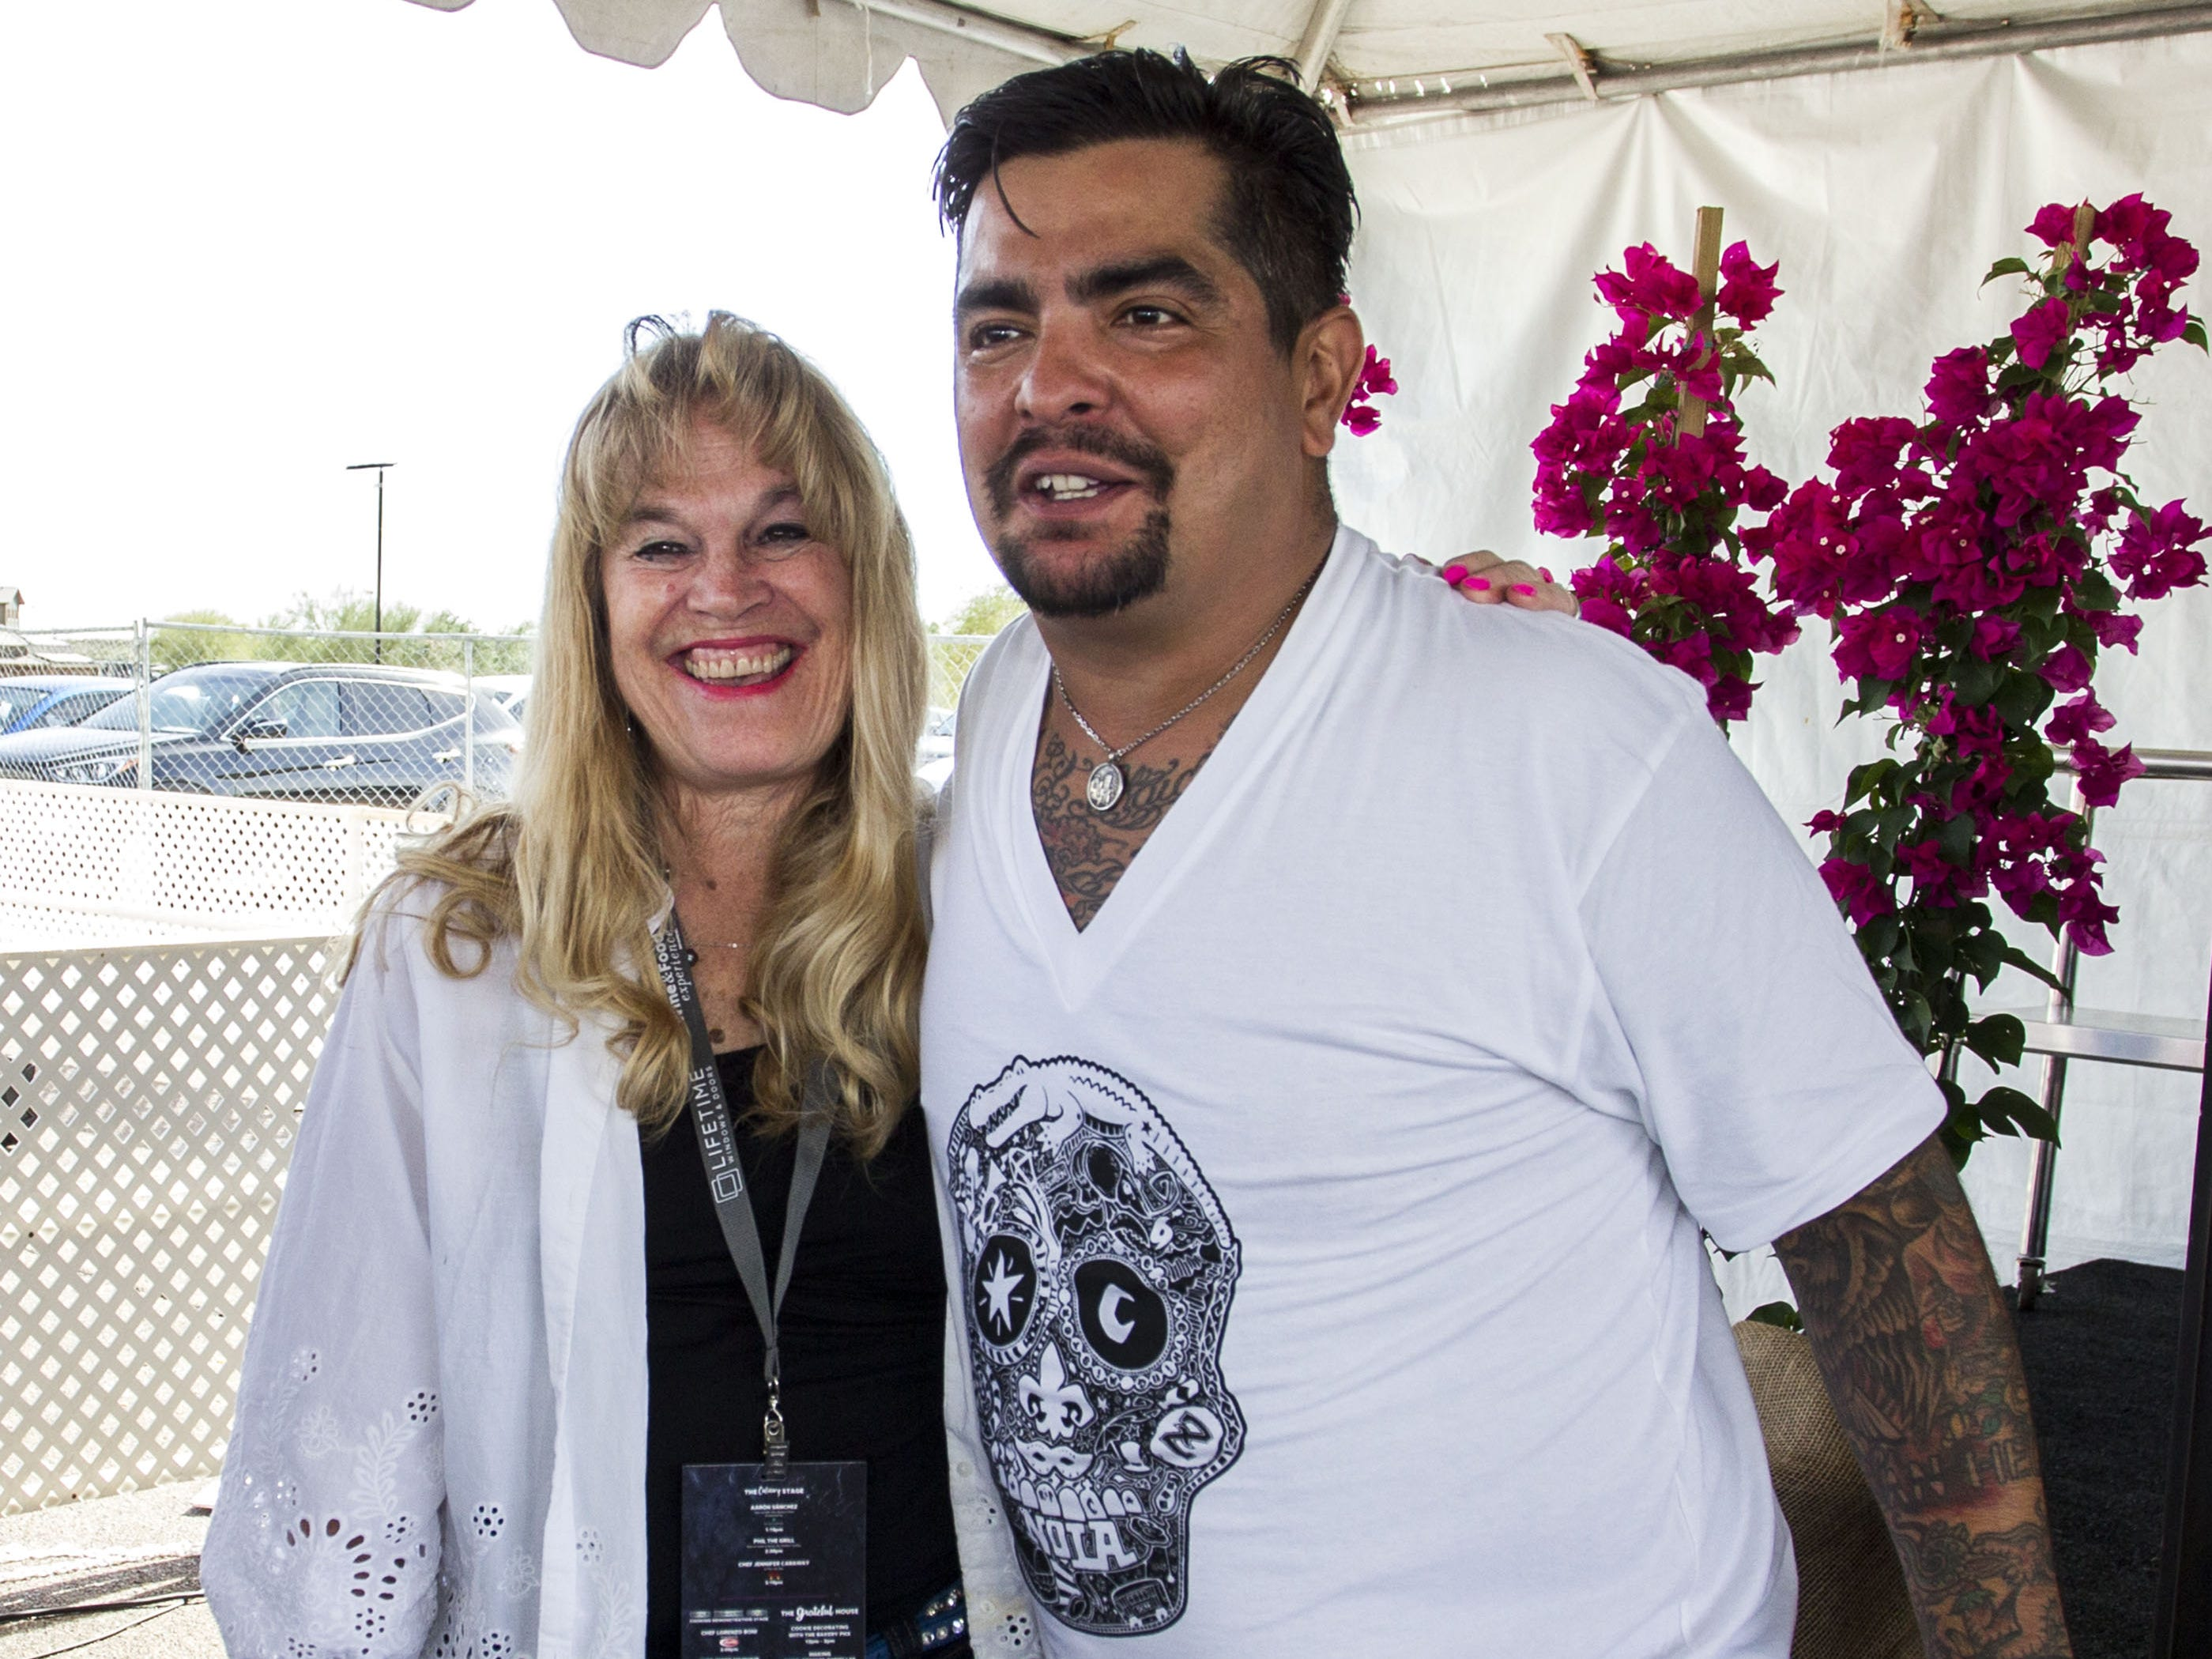 Chef Aarón Sánchez poses with a fan during the azcentral Wine & Food Experience at WestWorld of Scottsdale, Sunday, Nov. 4, 2018.